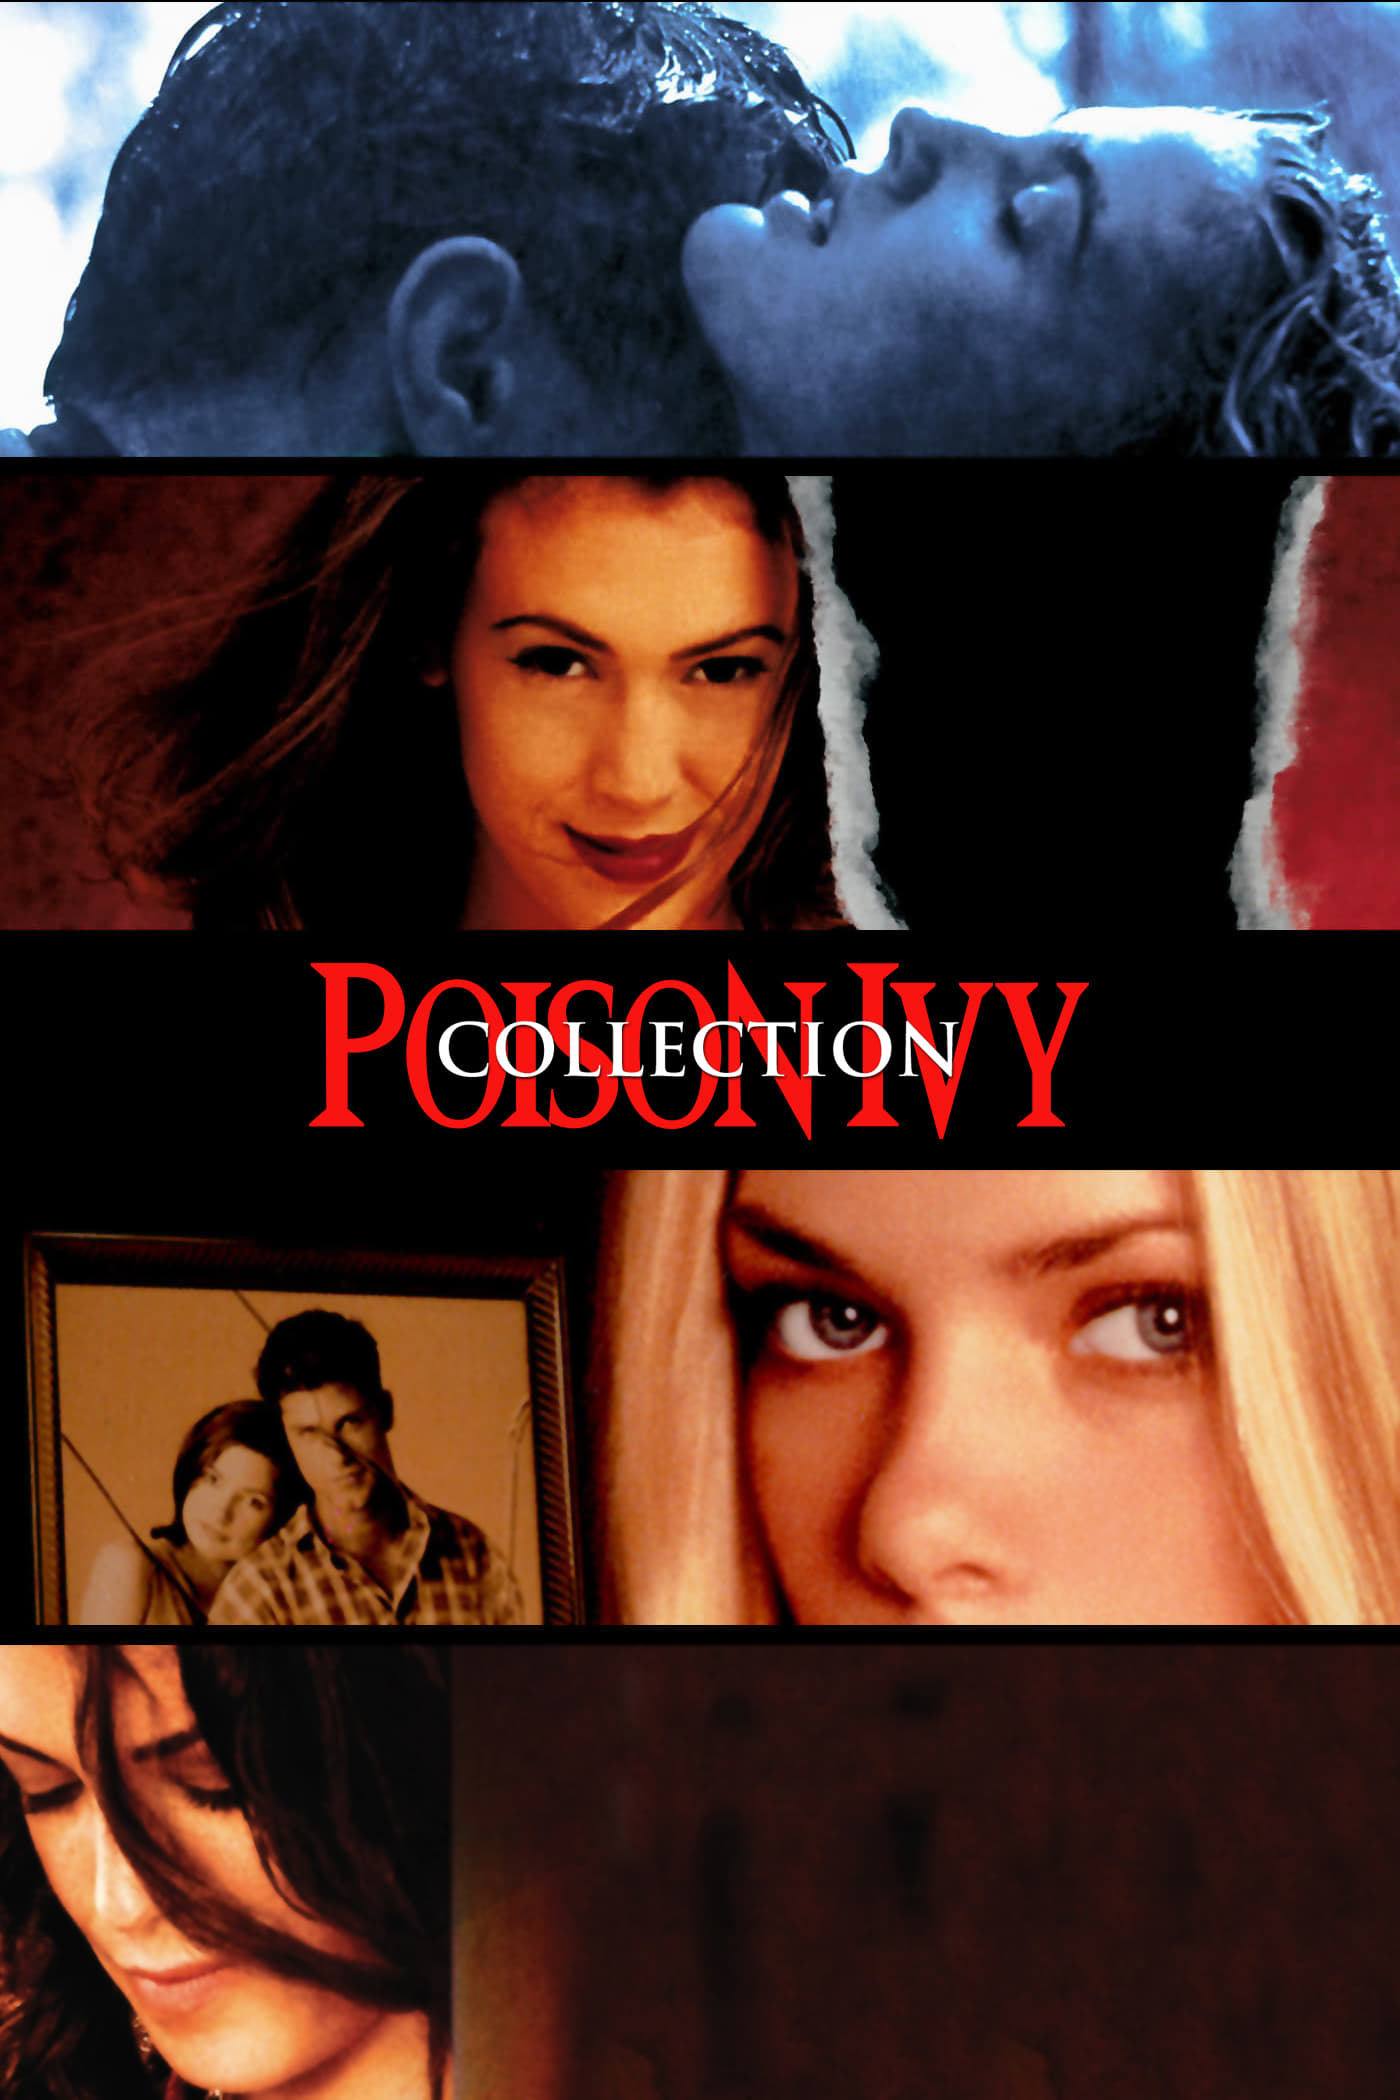 Alyssa Milano Poison Ivy 2 all movies from poison ivy collection saga are on movies